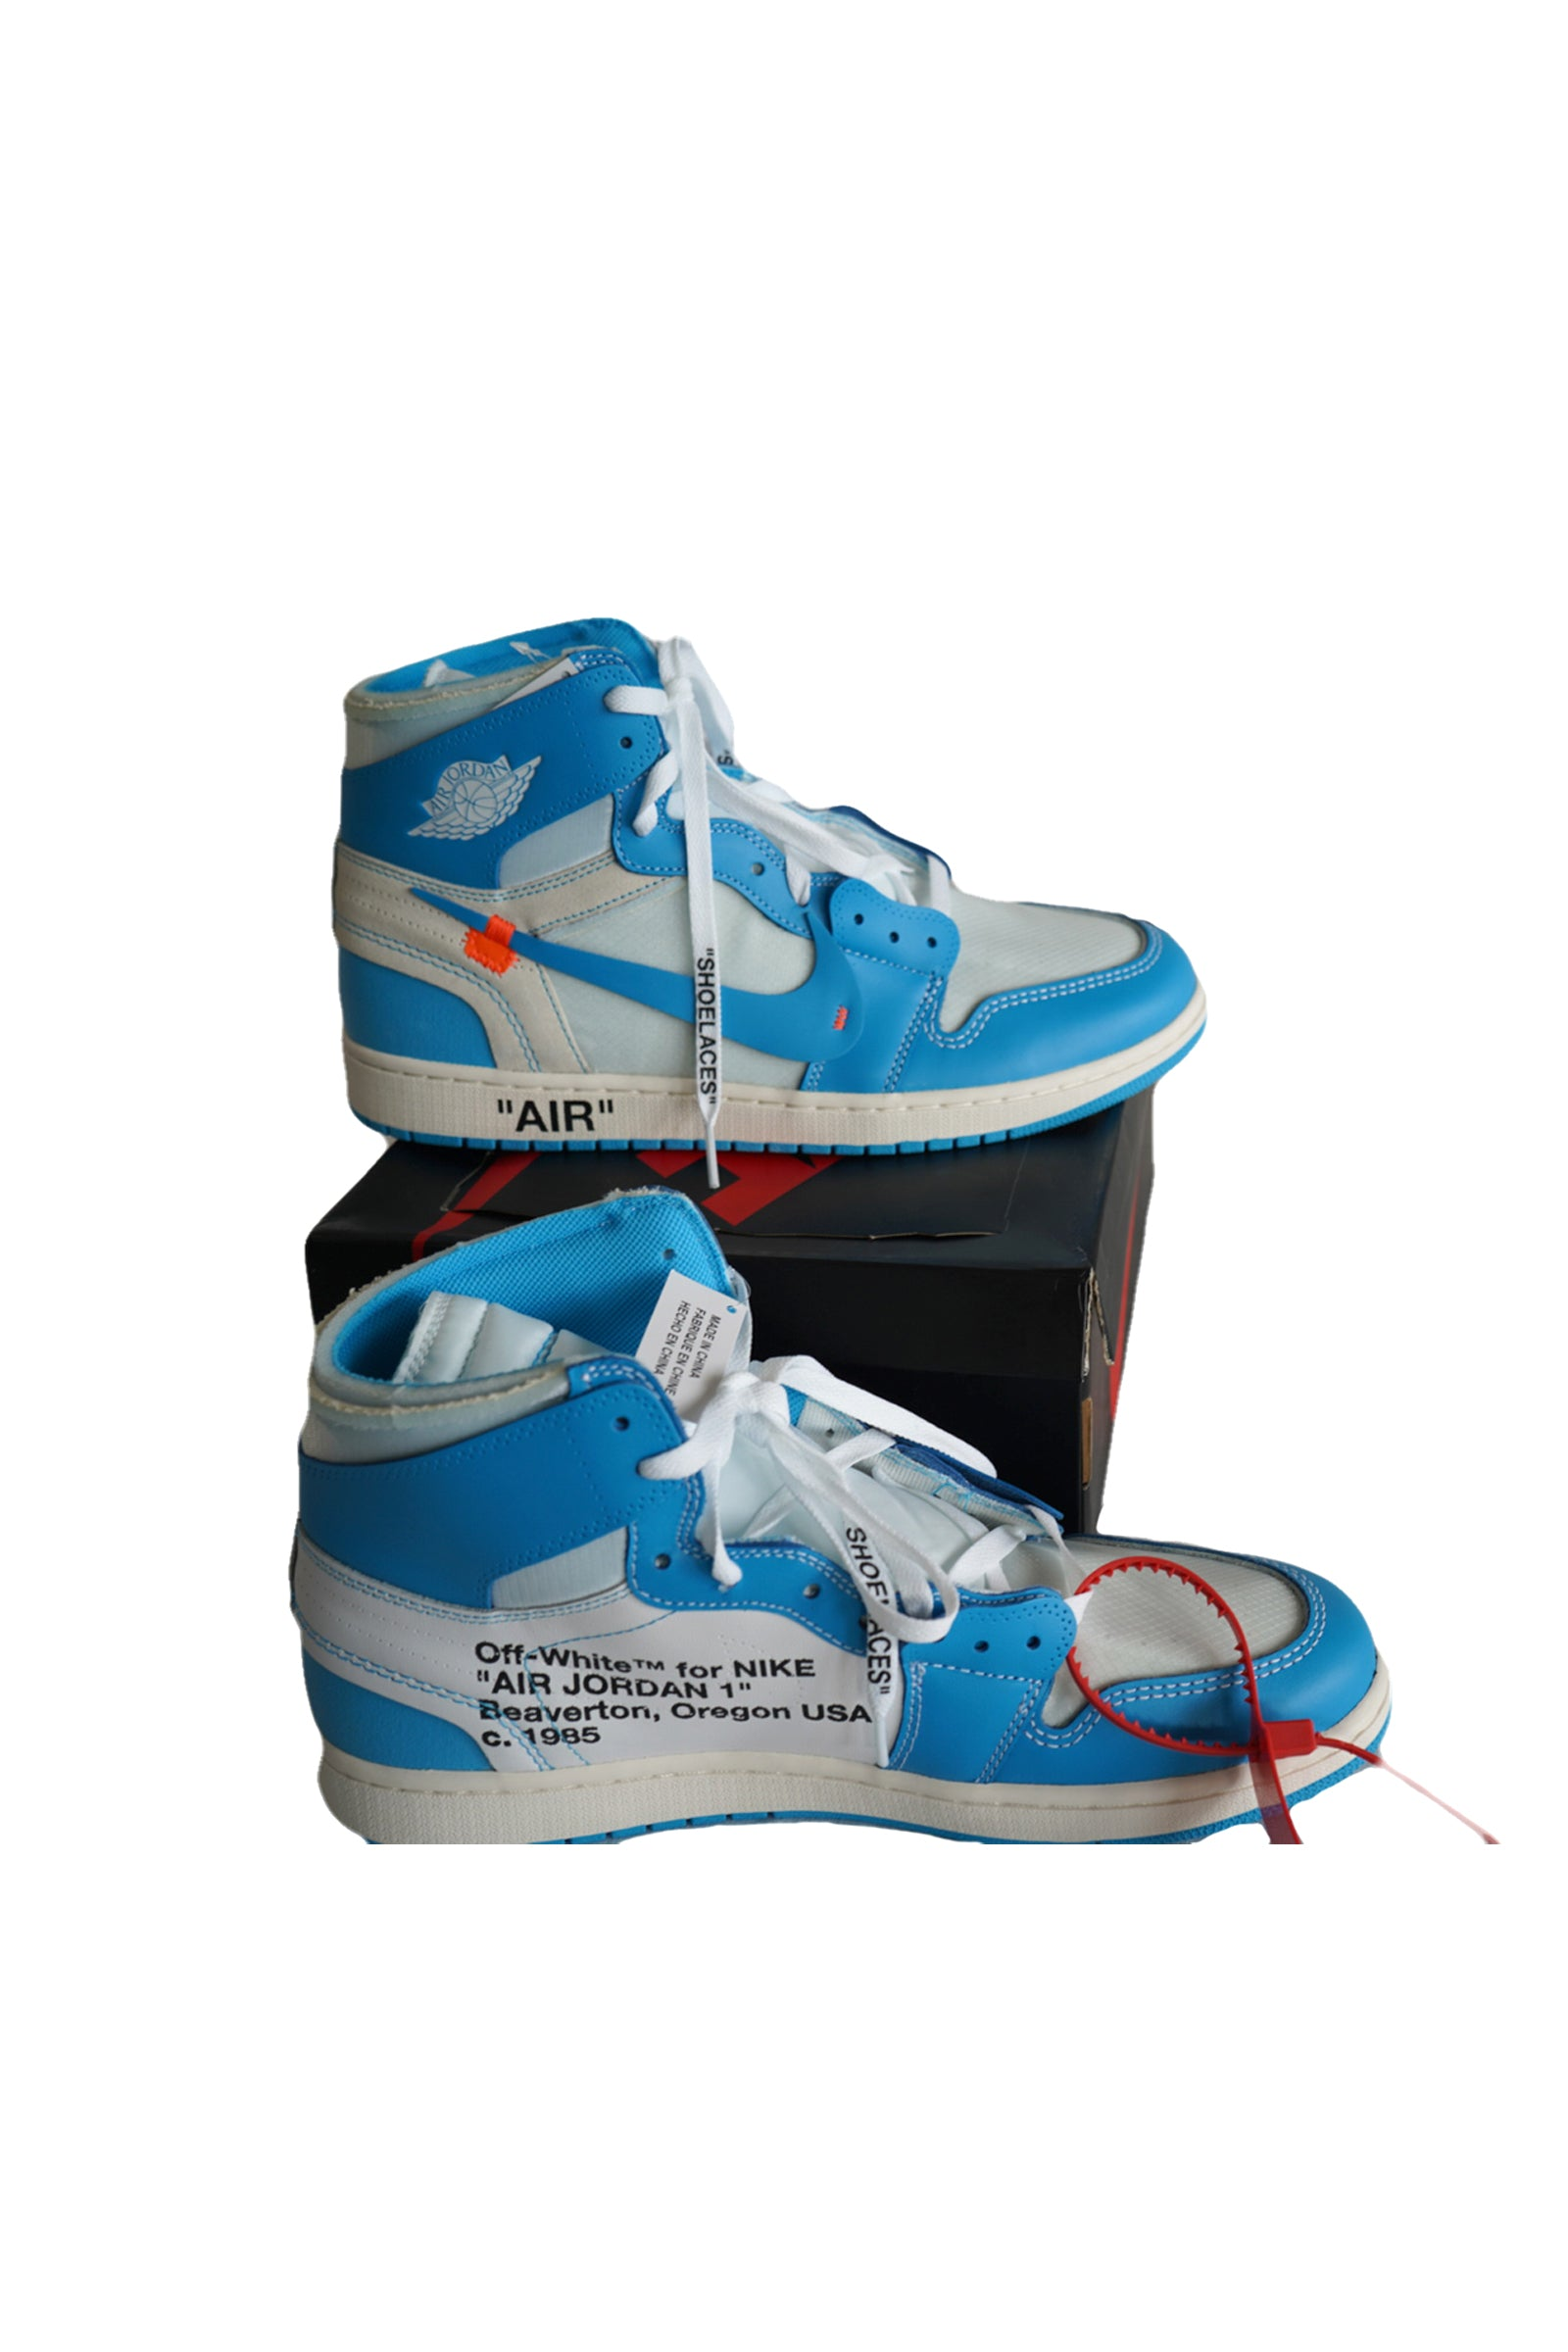 Air Jordan 1's Off-white Blue (new in box) Size 13